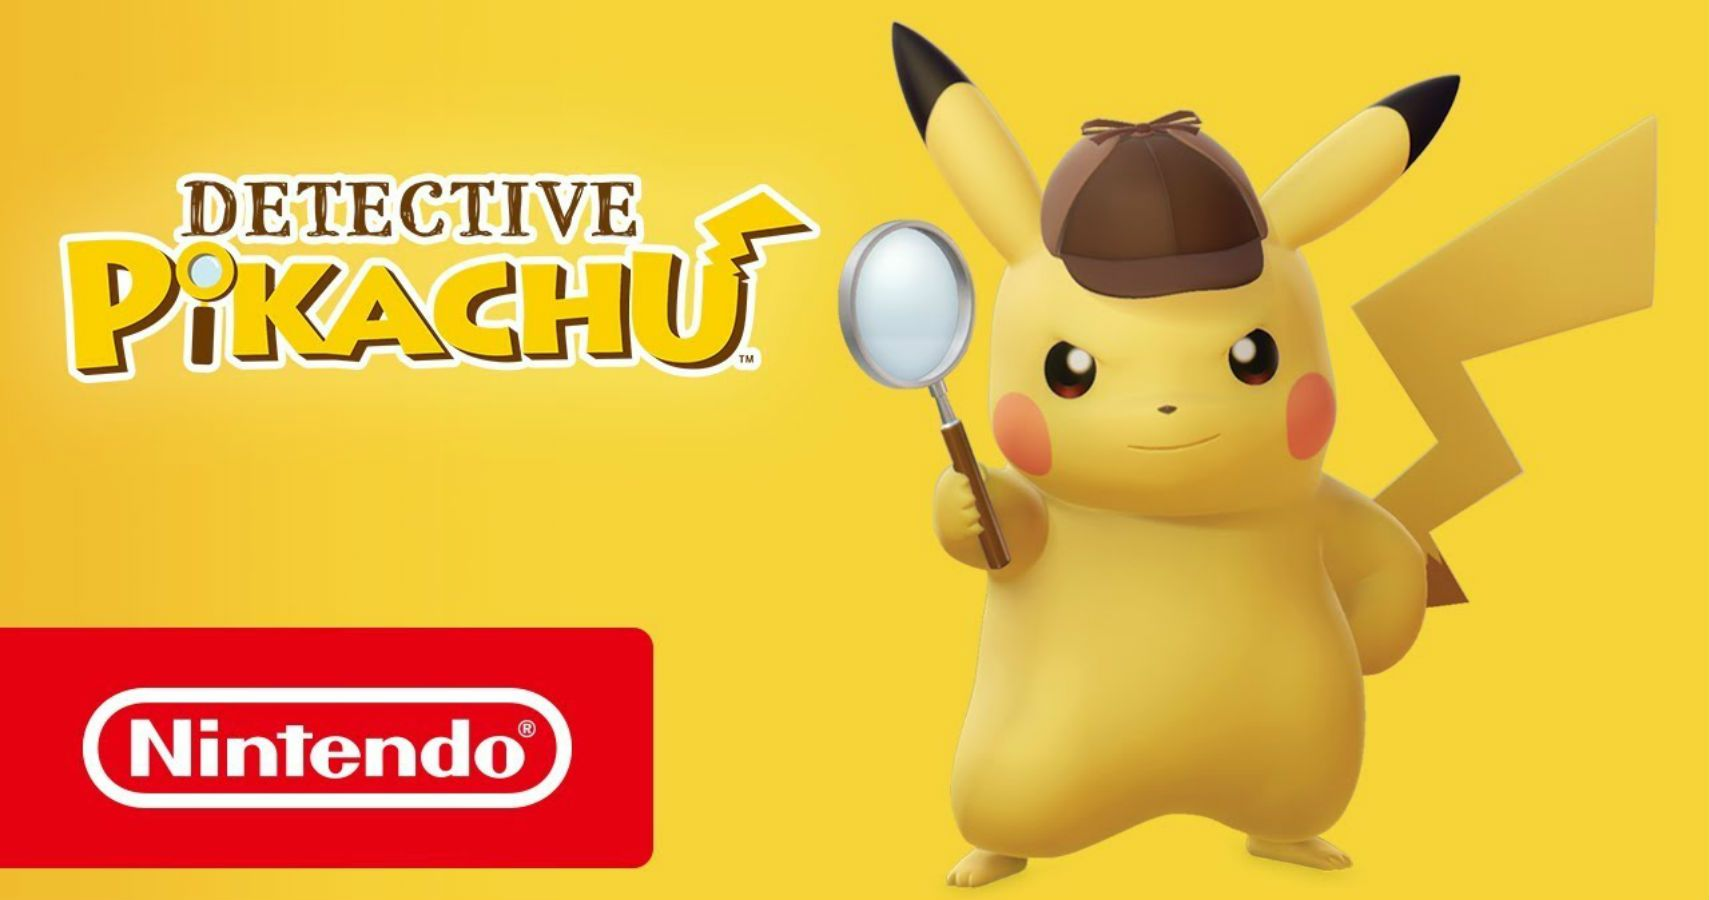 Pokemon Studio Appears To Be Hiring For Detective Pikachu On Switch